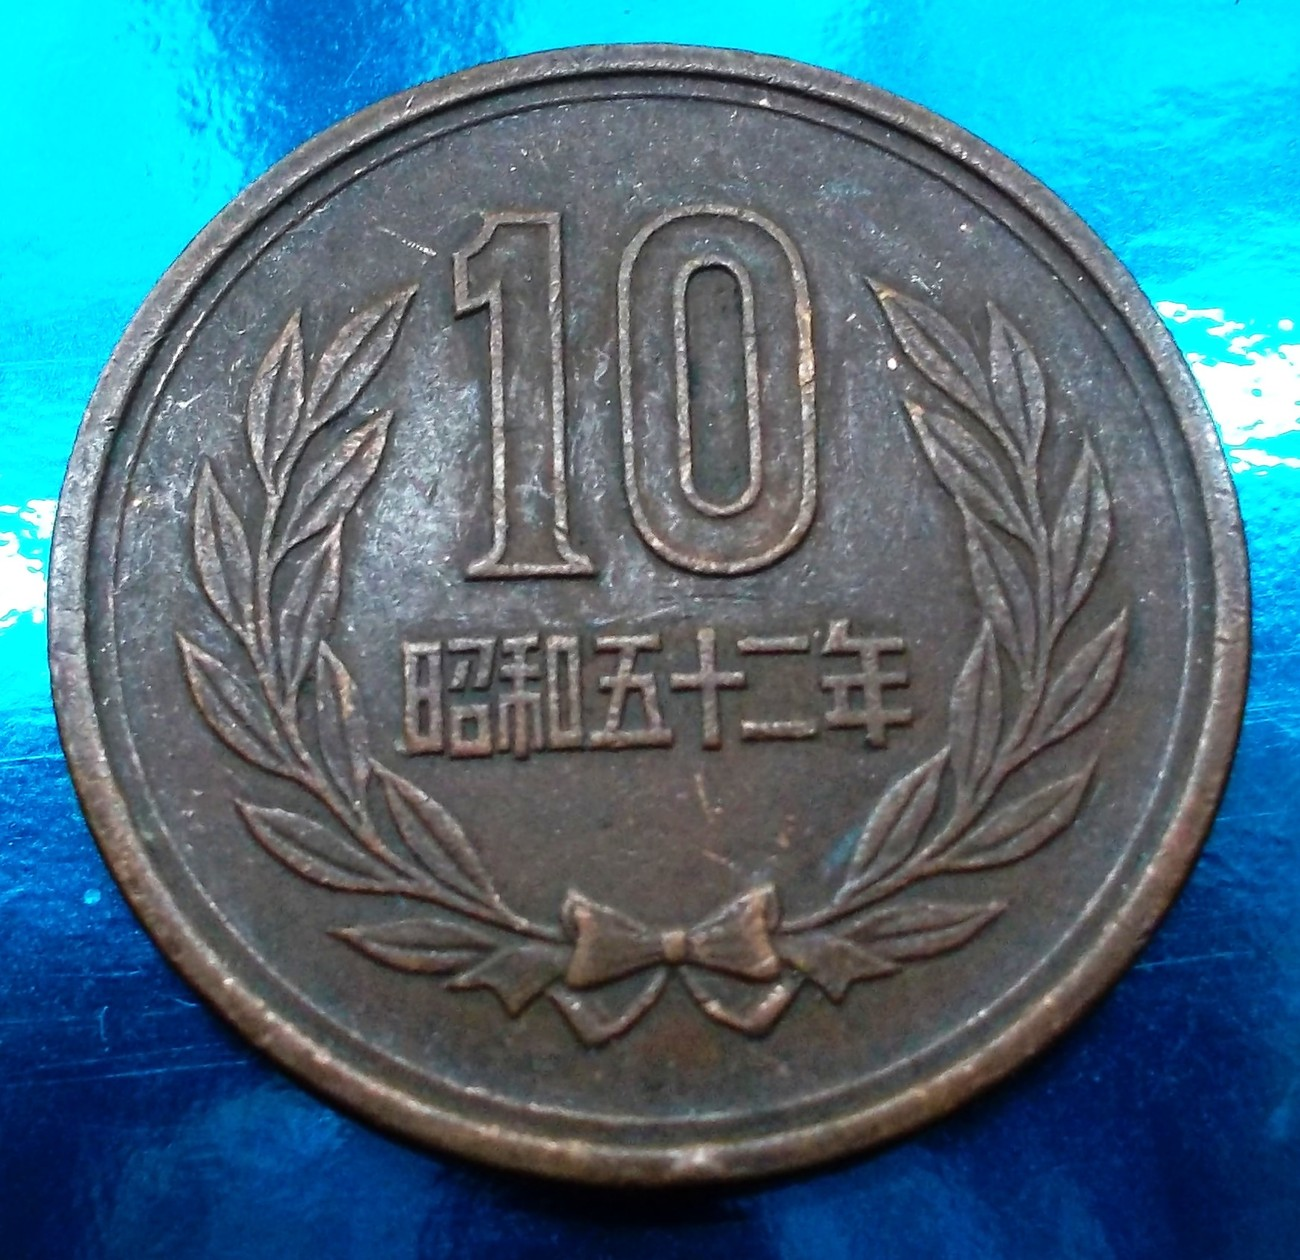 Historical Japanese 10 yen coin, 1978